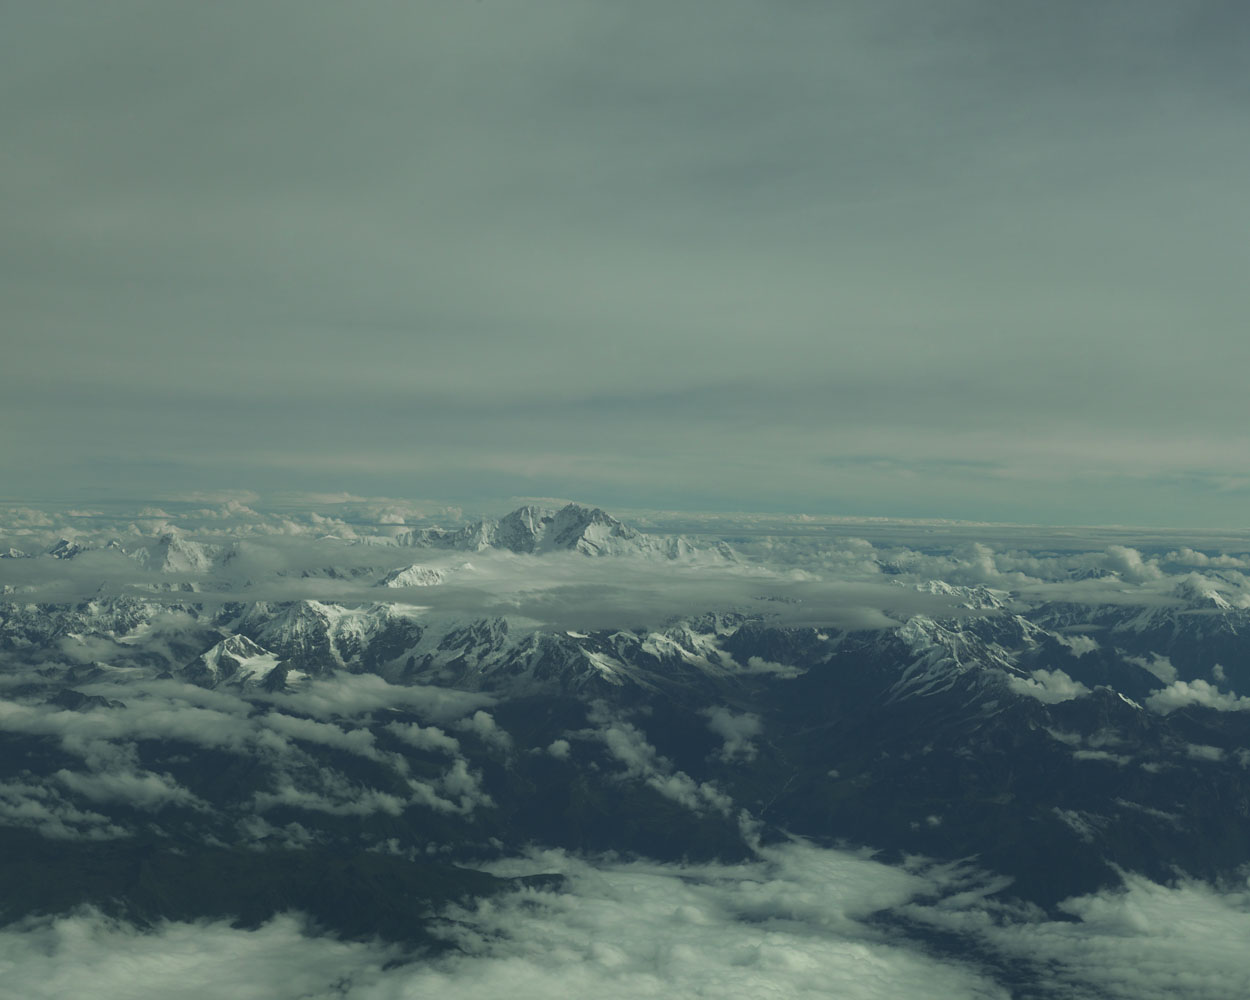 View of Mount Jomolhari from the air. The Himalayan peak straddles the border between Tibet and Bhutan.